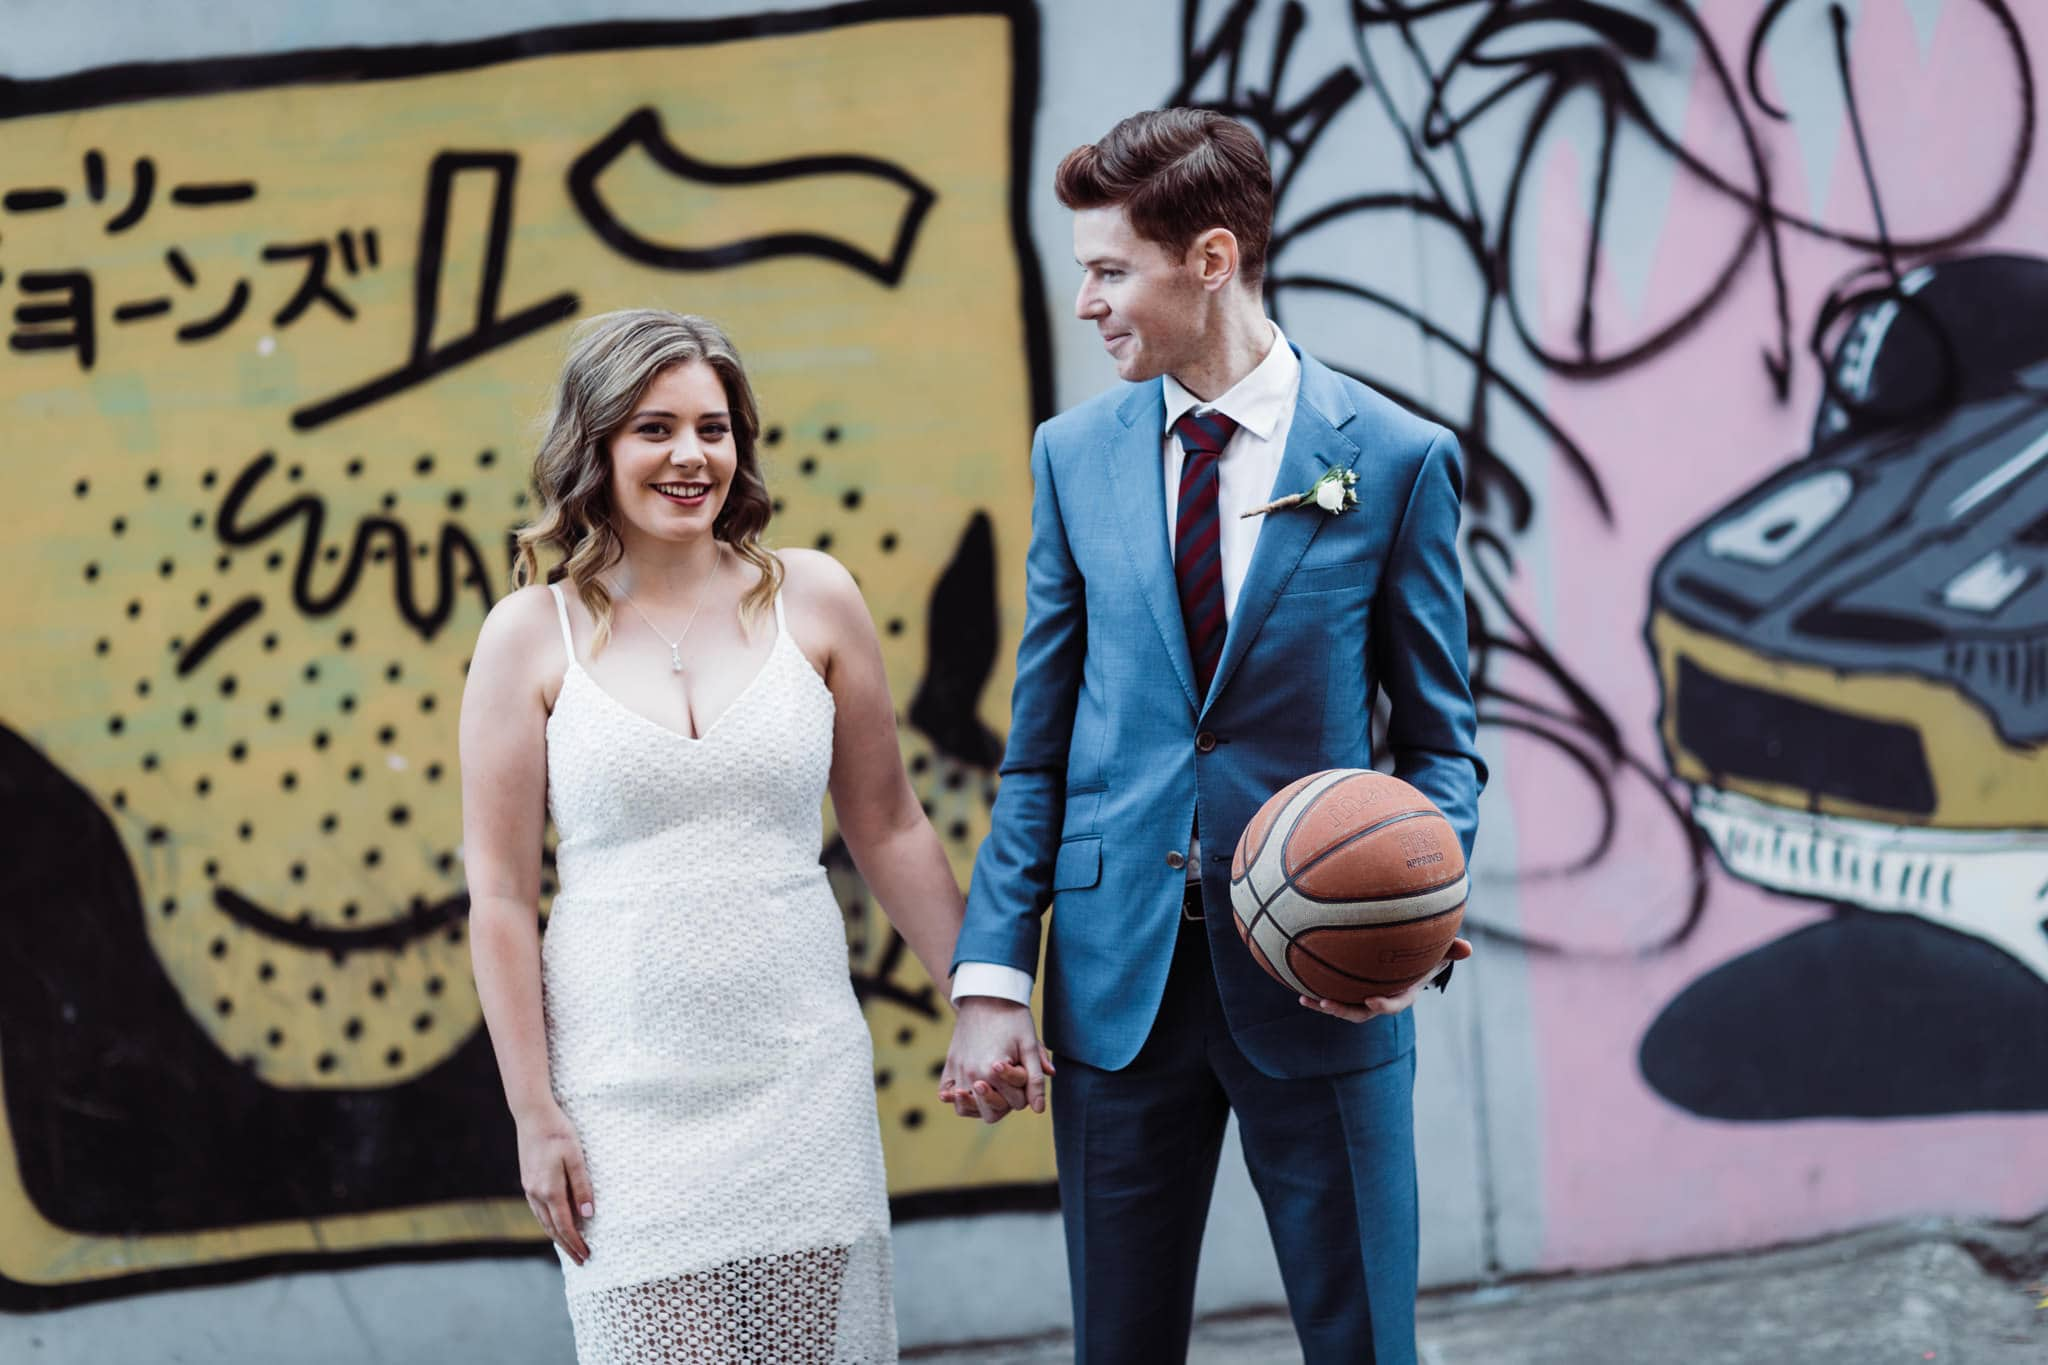 bridal couple playing basketball sports at wedding - candid wedding documentation by mellbourne photographer - rad and relaxed photos